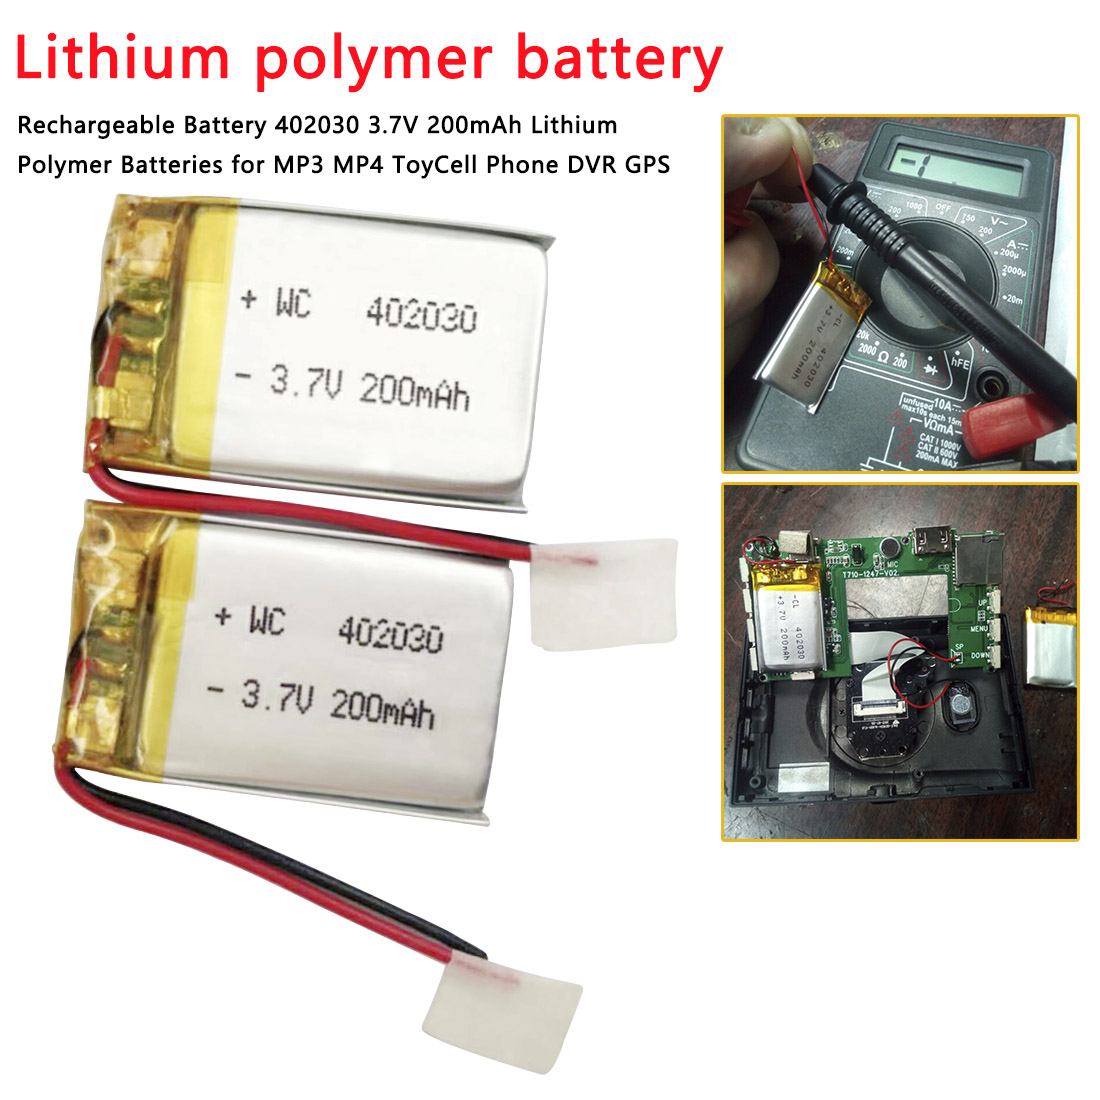 Rechargeable Battery 402030 3.7V MP3 Headphone High Capacity Li-Po battery Universal 402030 Battery Pack